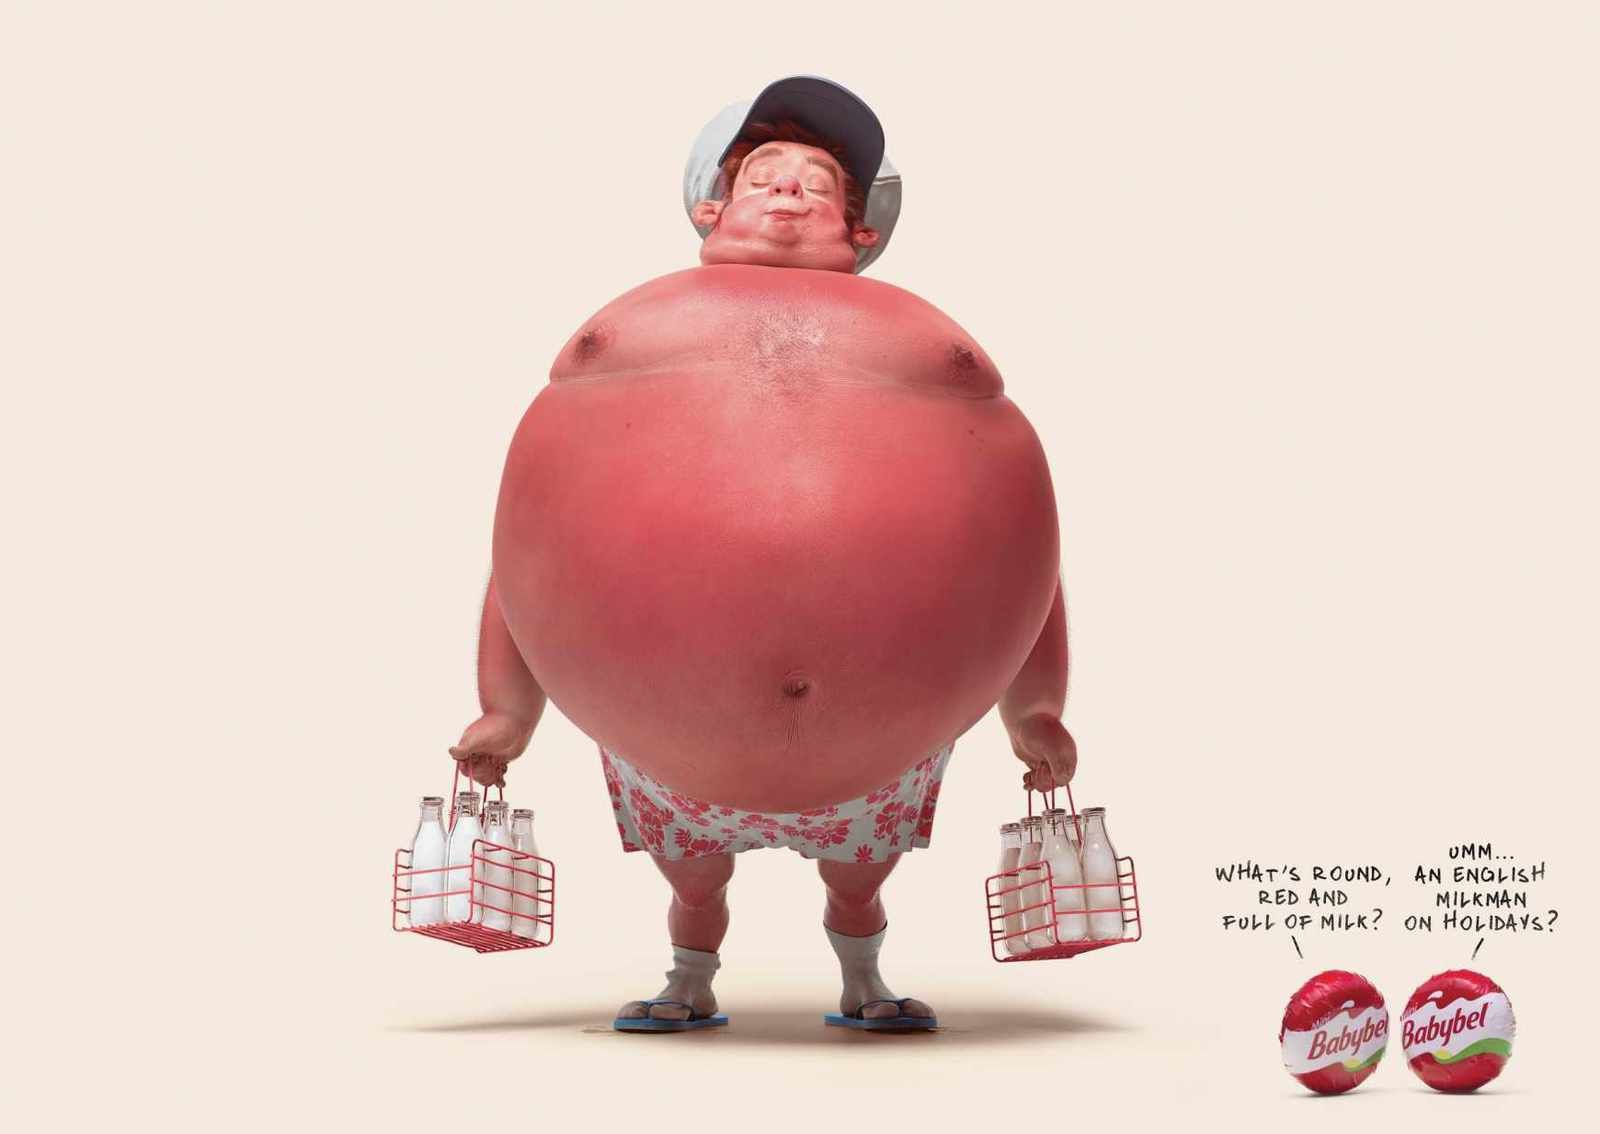 """What's round, red, and full of milk ?"" ""Umm... an english milkman on holidays ?"" (Babybel) 